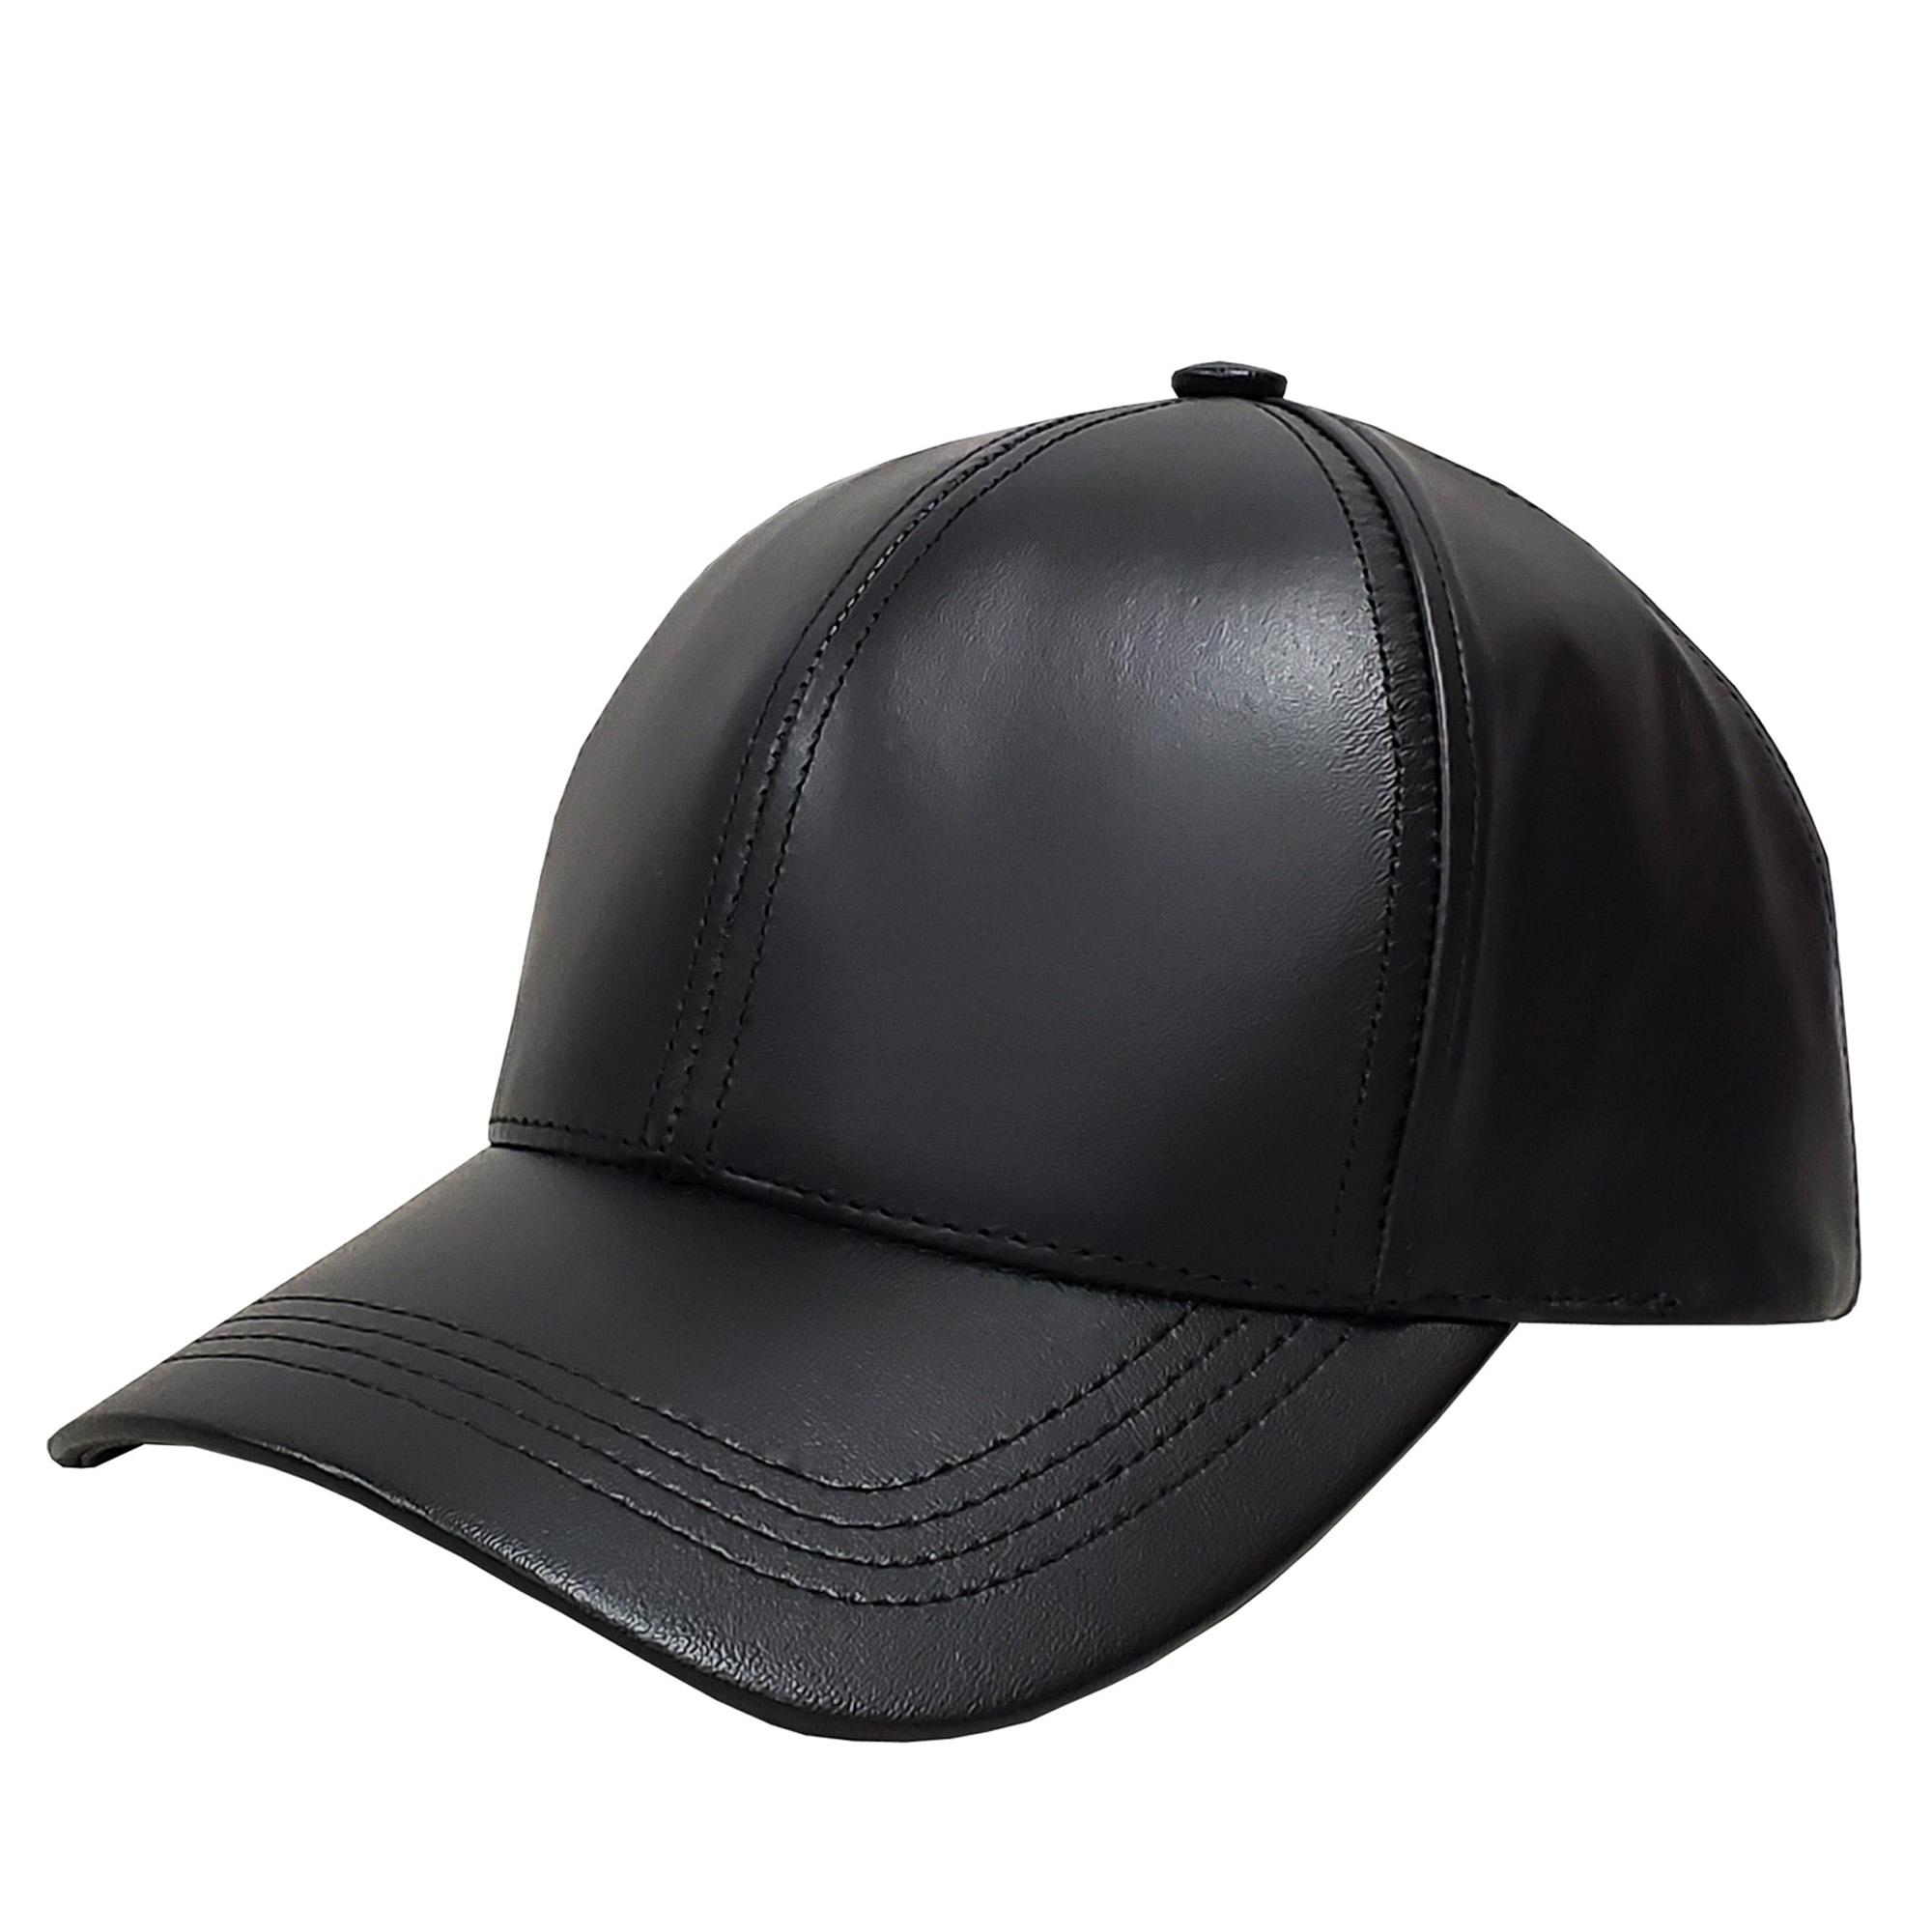 Black Leather Baseball Cap